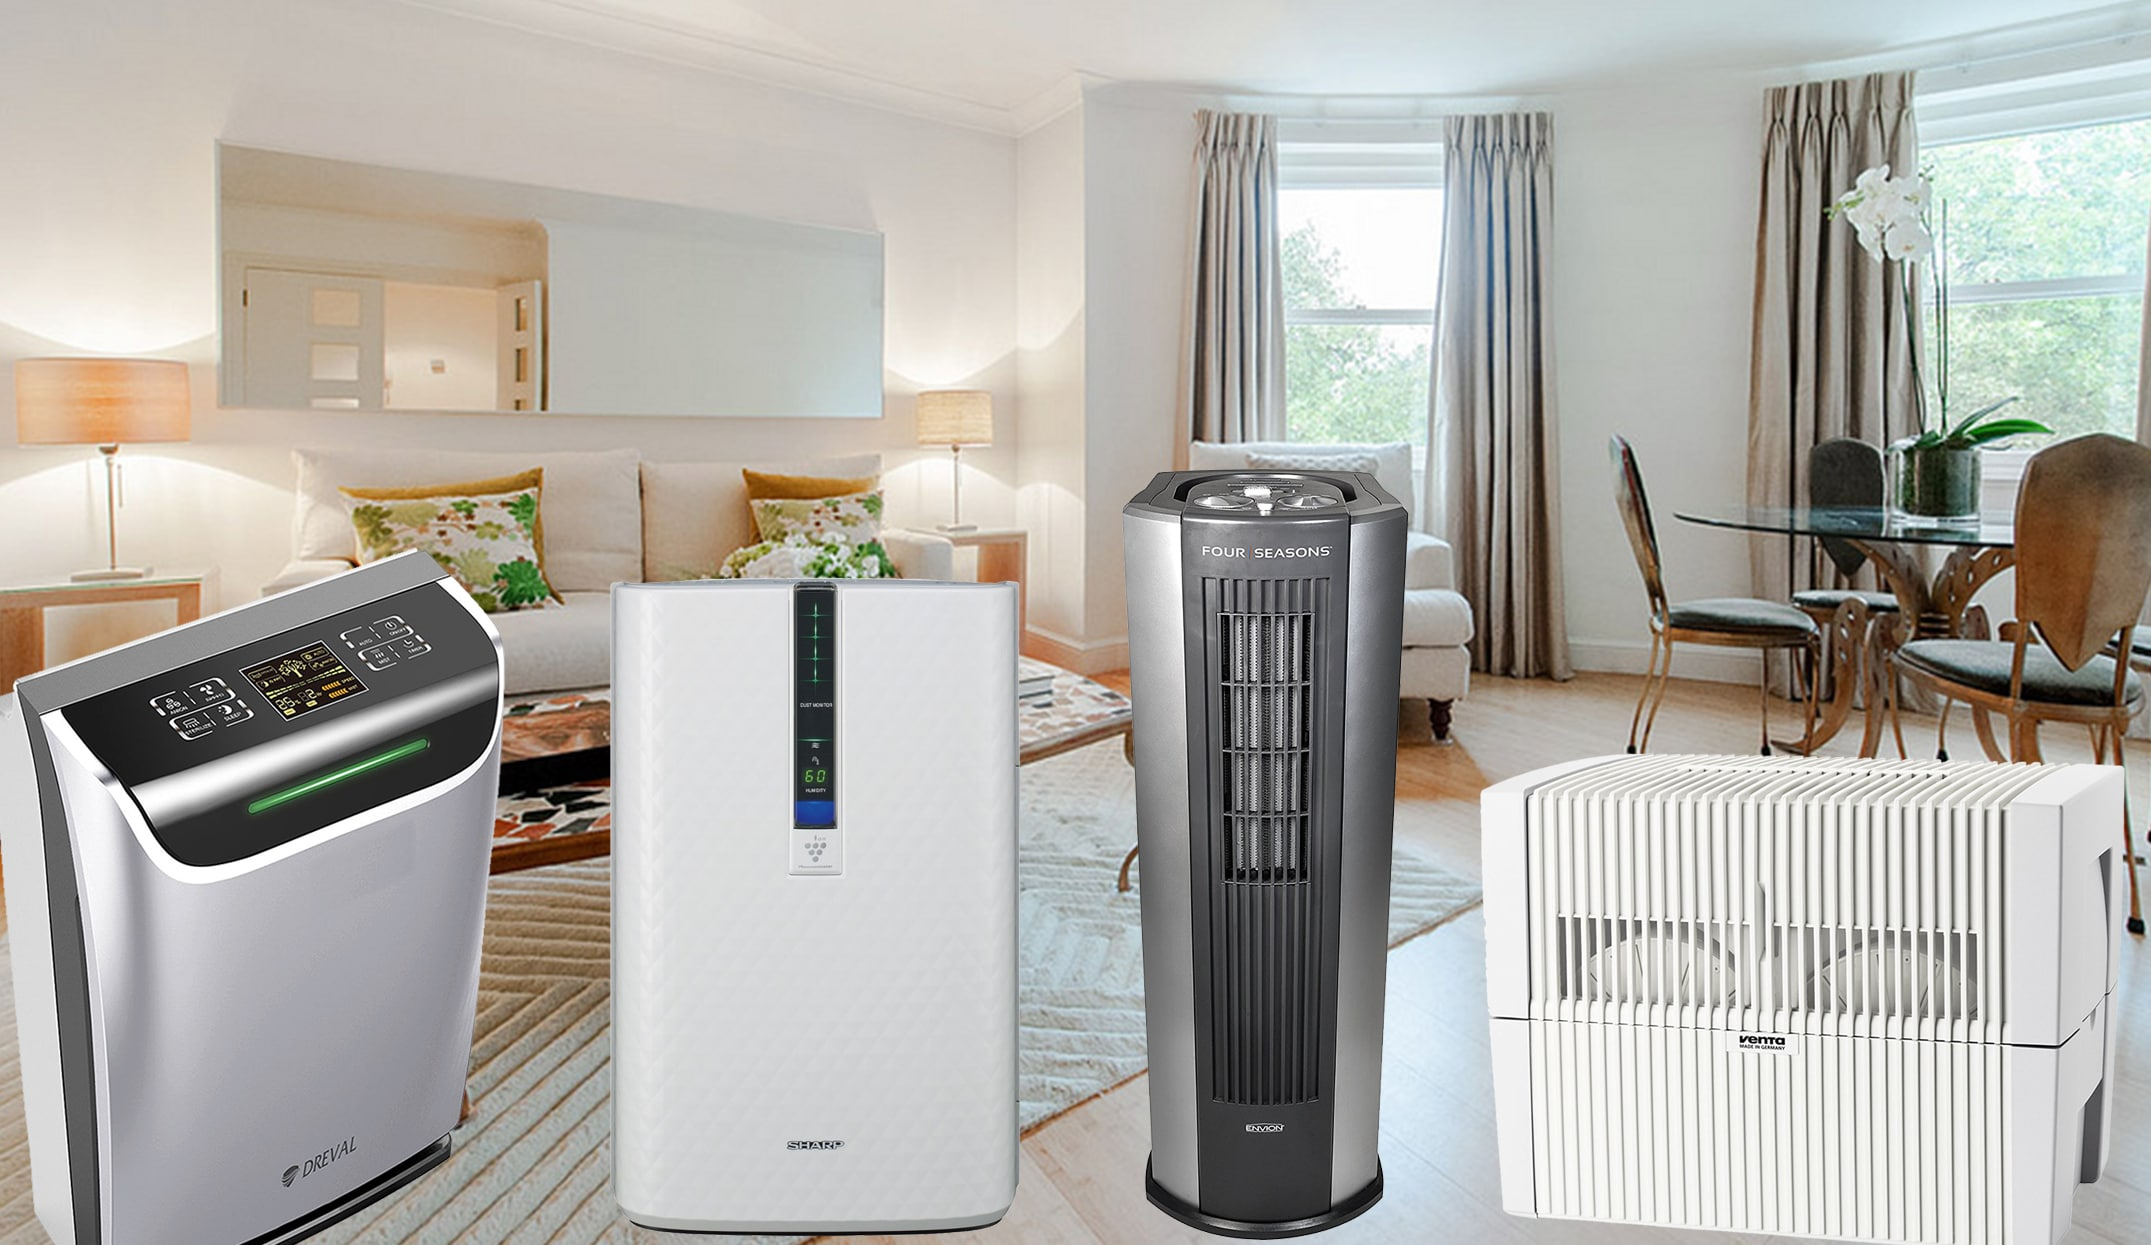 How to choose a humidifier-air purifier: types, tips on choosing a review of the best models 75